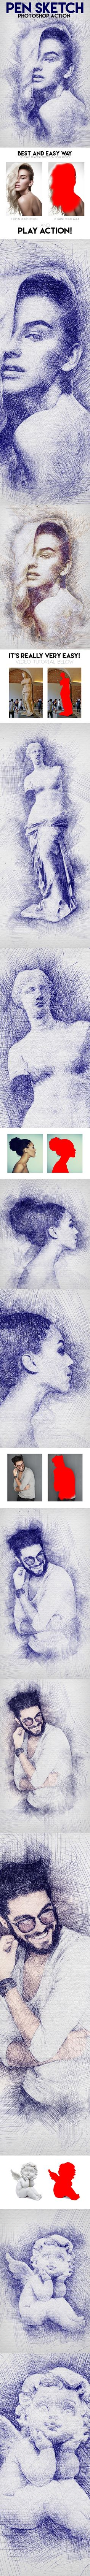 Pen Sketch Photoshop Action. Download here: http://graphicriver.net/item/pen-sketch-photoshop-action/15223599?ref=ksioks